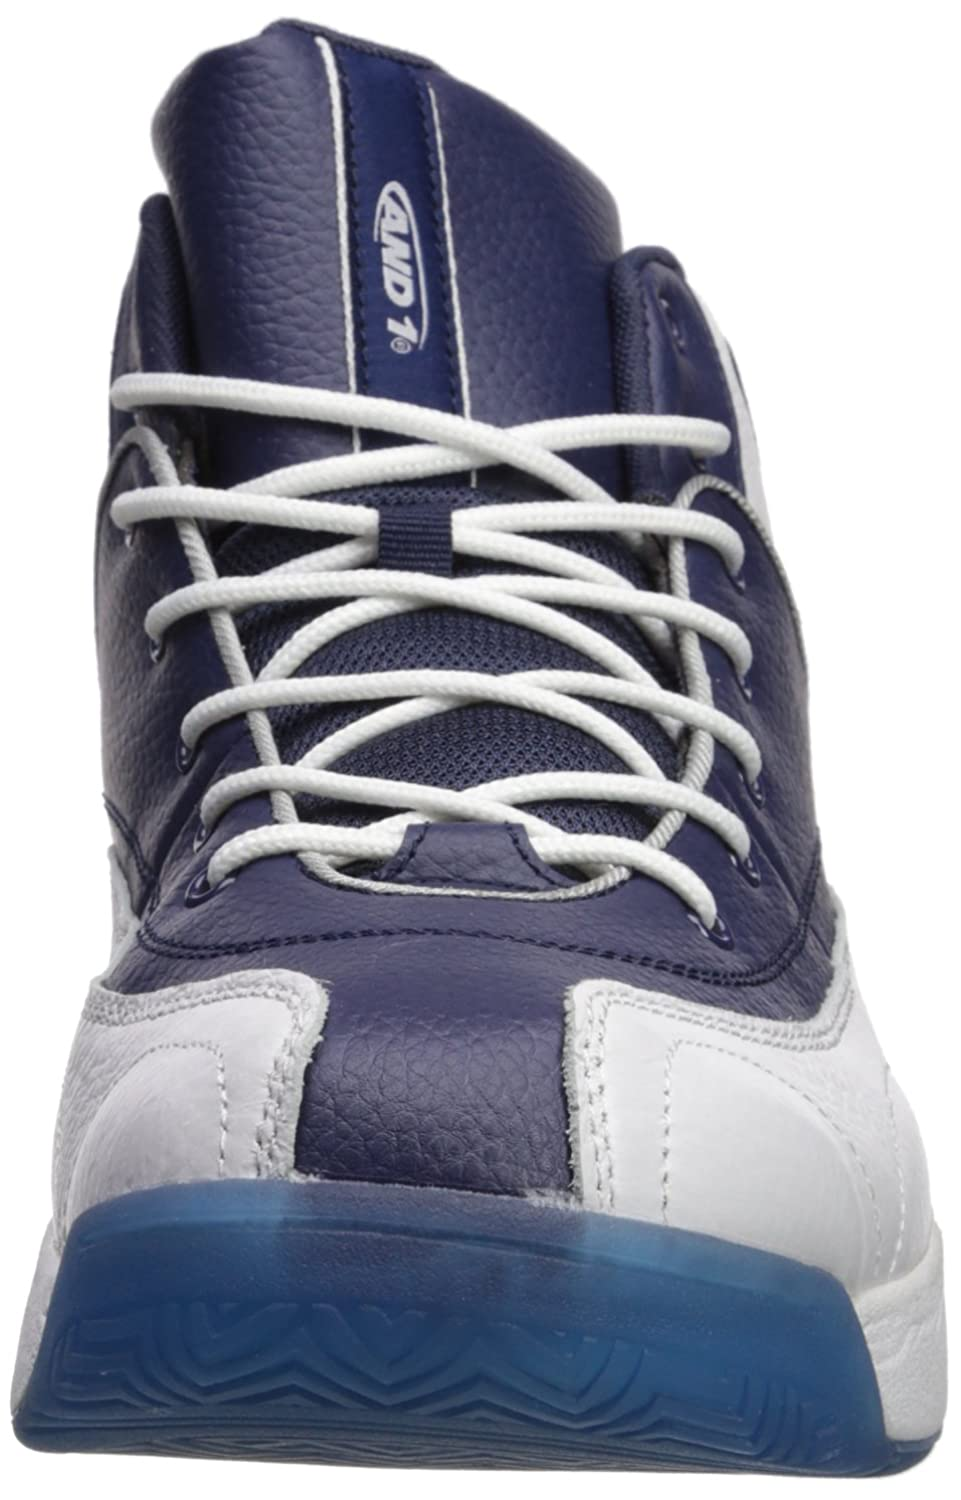 AND1 and 1 Men's Coney Island Classic Basketball Shoe, Navy/Royal Blue/White,  8 M US: Amazon.co.uk: Shoes & Bags